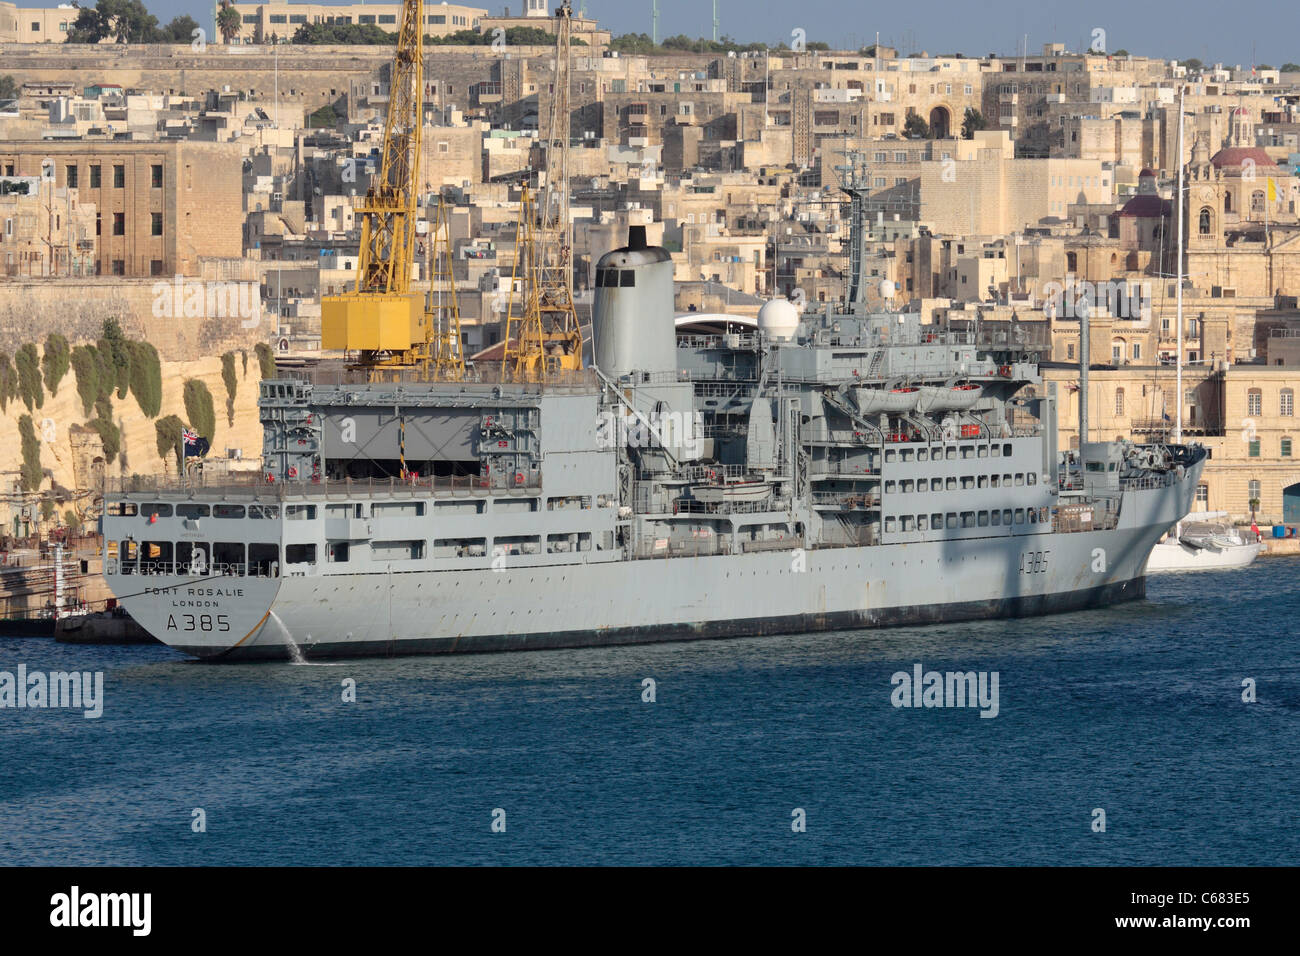 The Royal Navy Fleet Auxiliary supply ship RFA Fort Rosalie Stock Photo